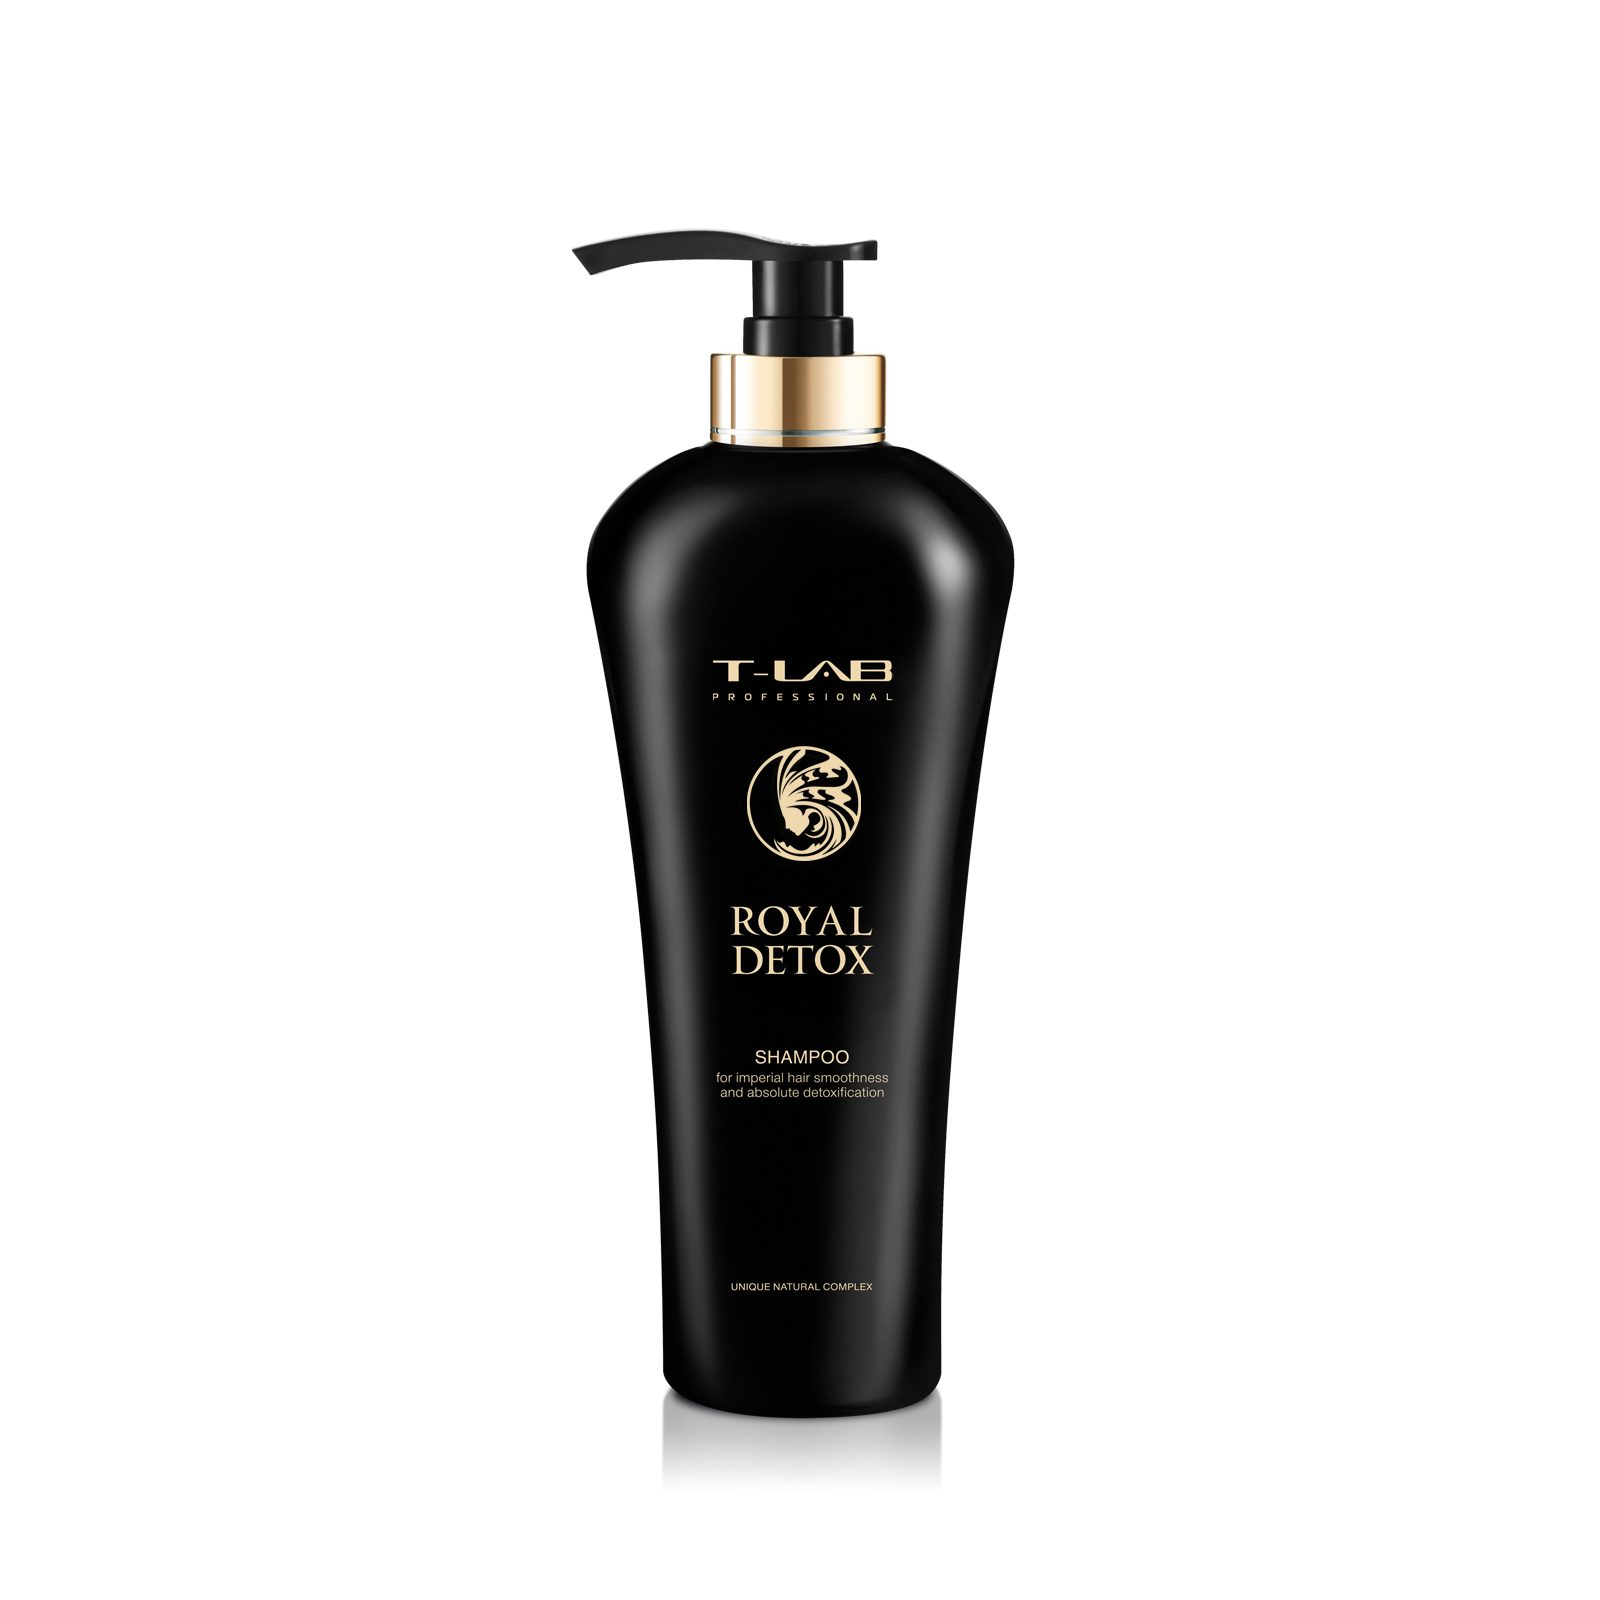 ROYAL DETOX SHAMPOO 750 ml